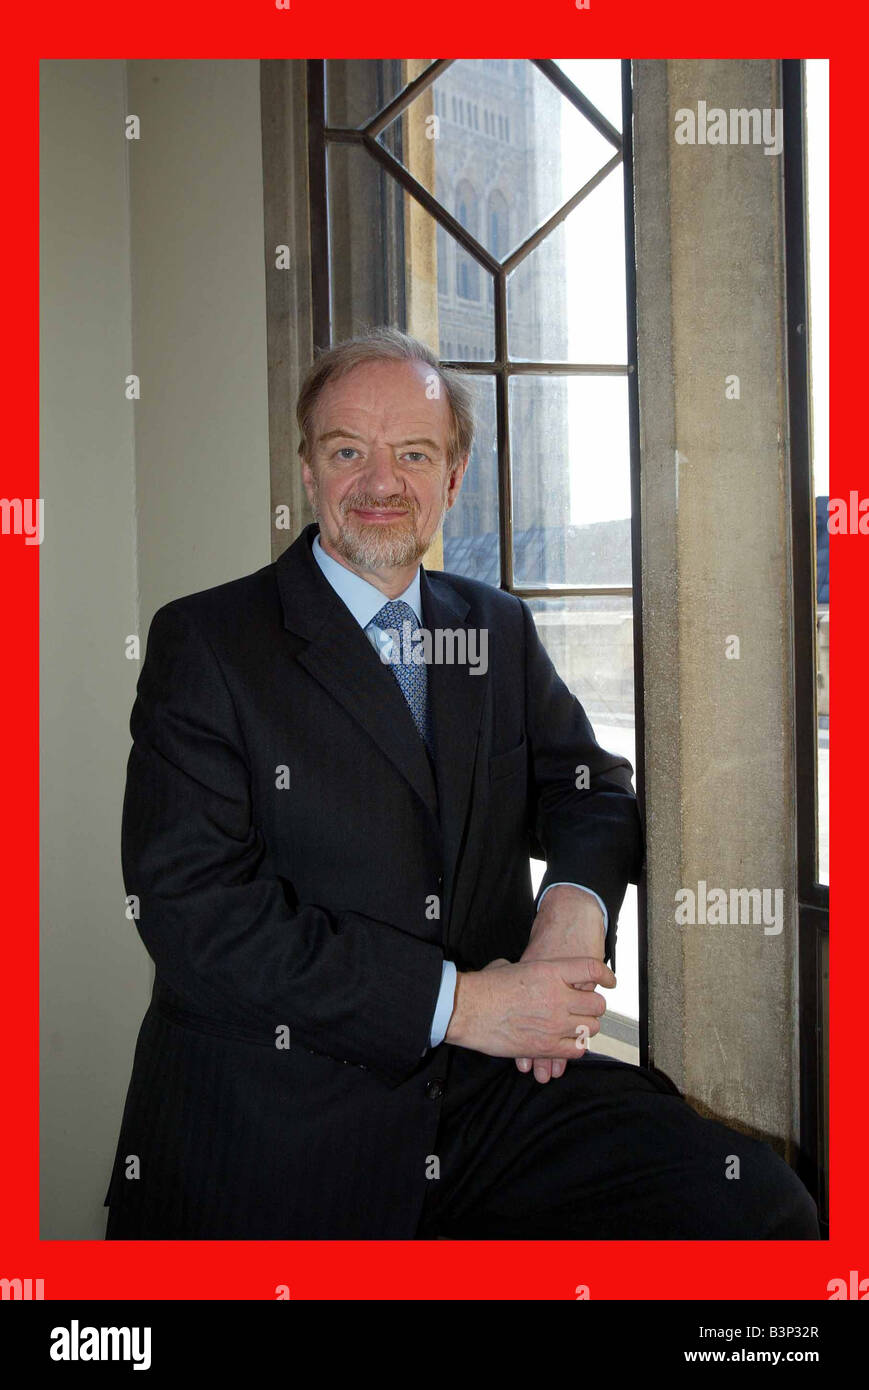 Robin Cook MP in the House of Commons February 2002 - Stock Image